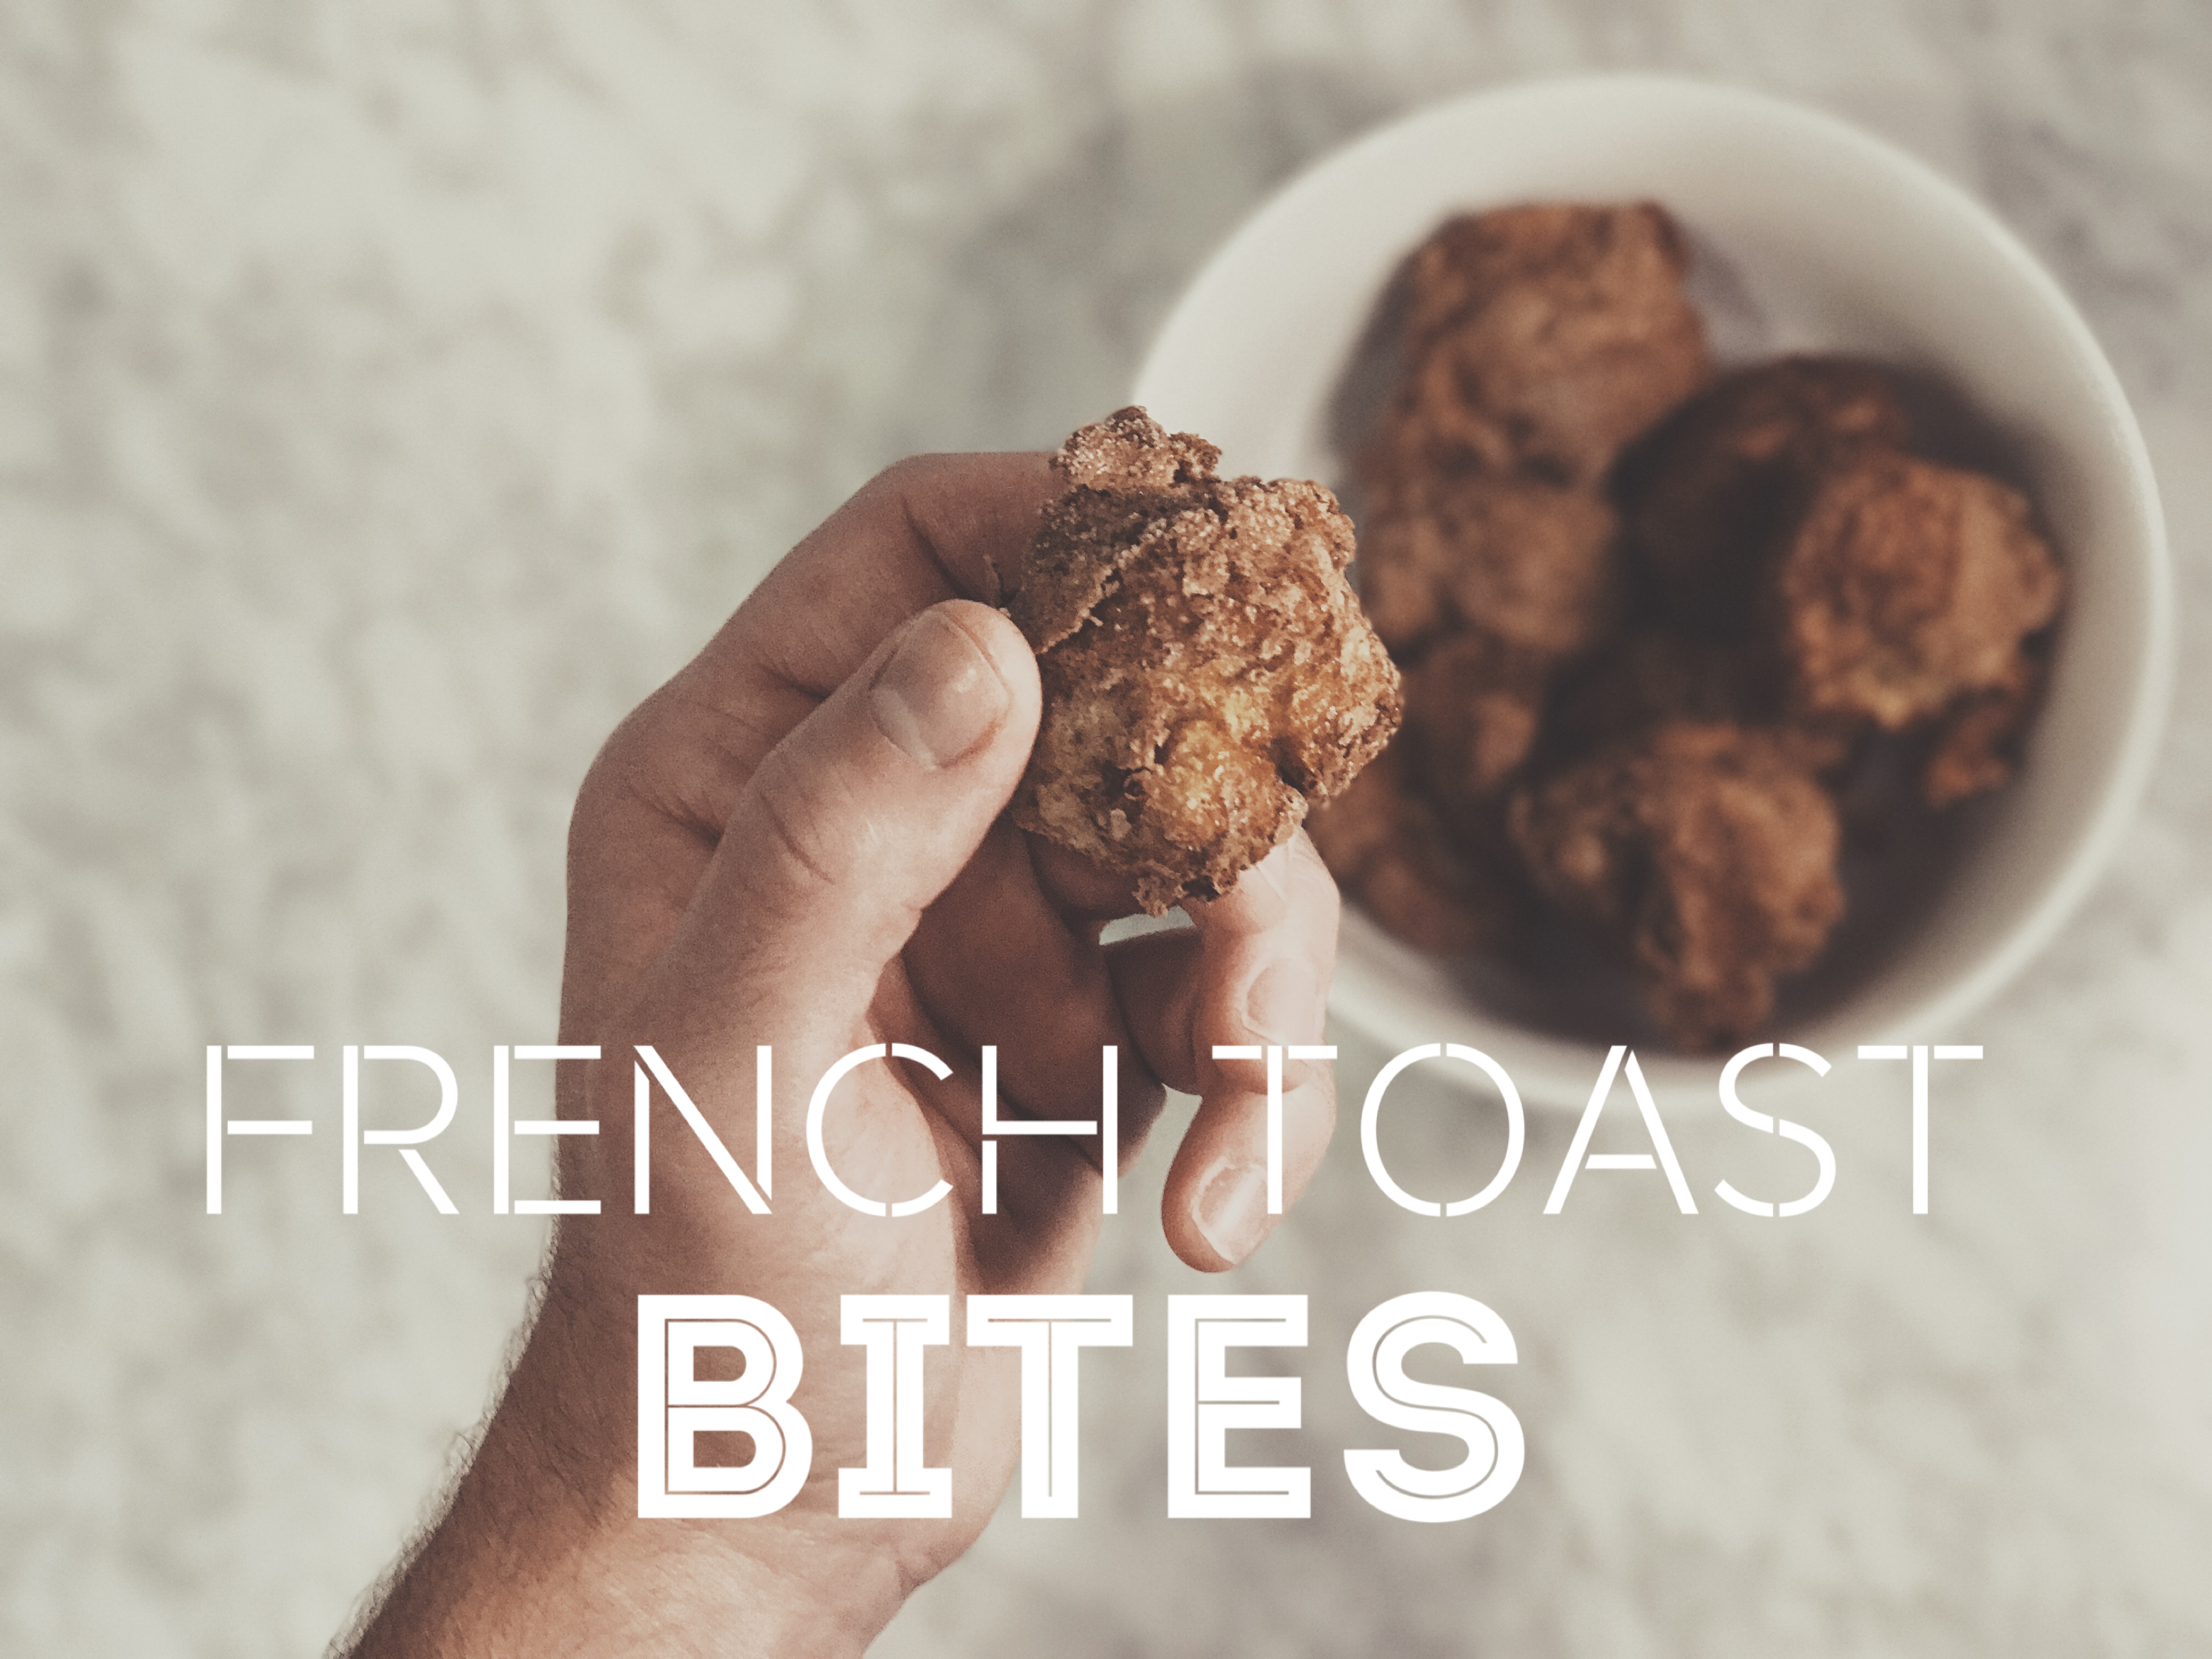 This french toast bites air fryer recipe is perfect for a quick and easy breakfast or brunch, but is also can make for a sweet dessert that everyone in the family is going to love.